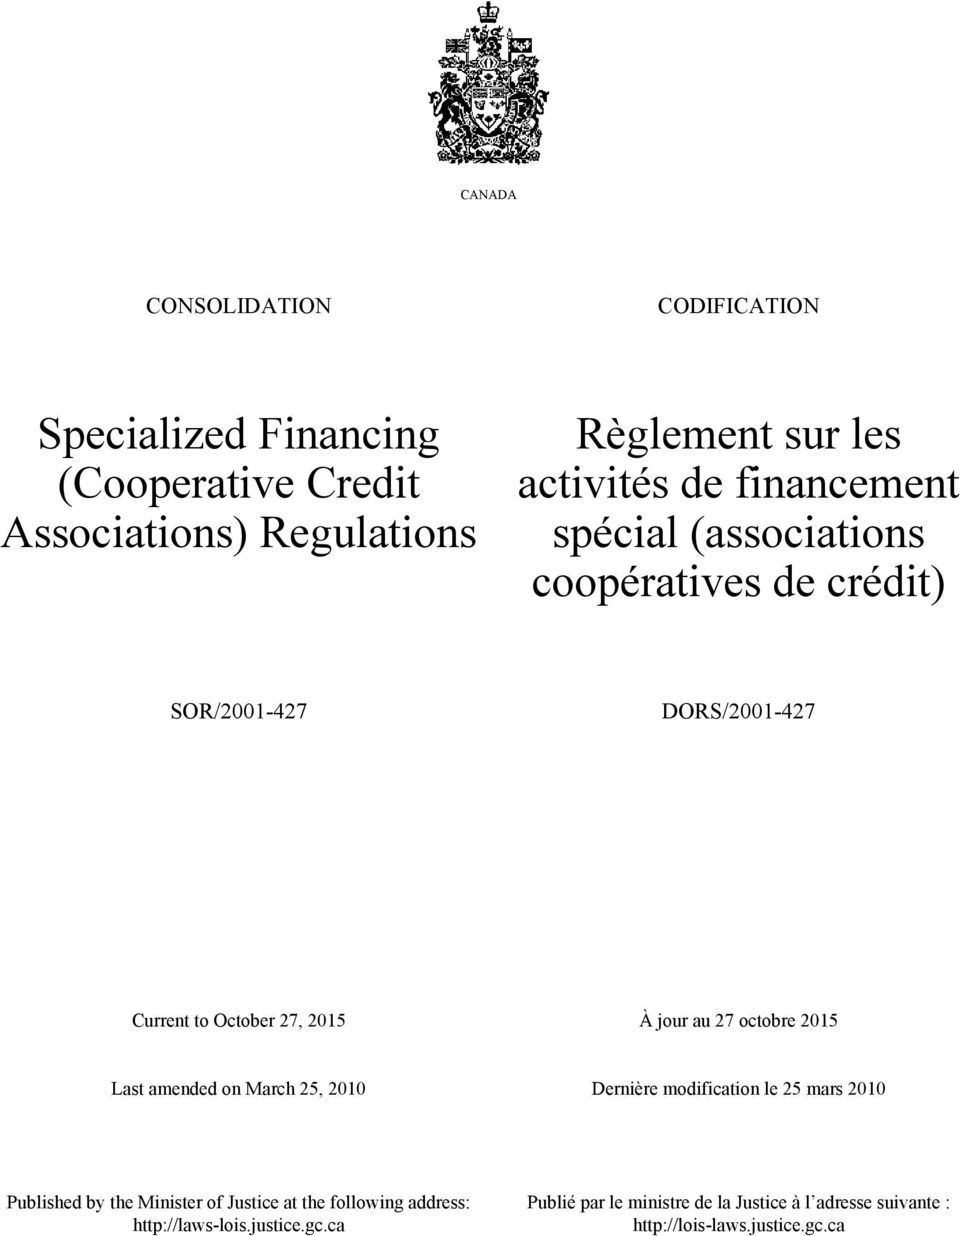 octobre 2015 Last amended on March 25, 2010 Dernière modification le 25 mars 2010 Published by the Minister of Justice at the